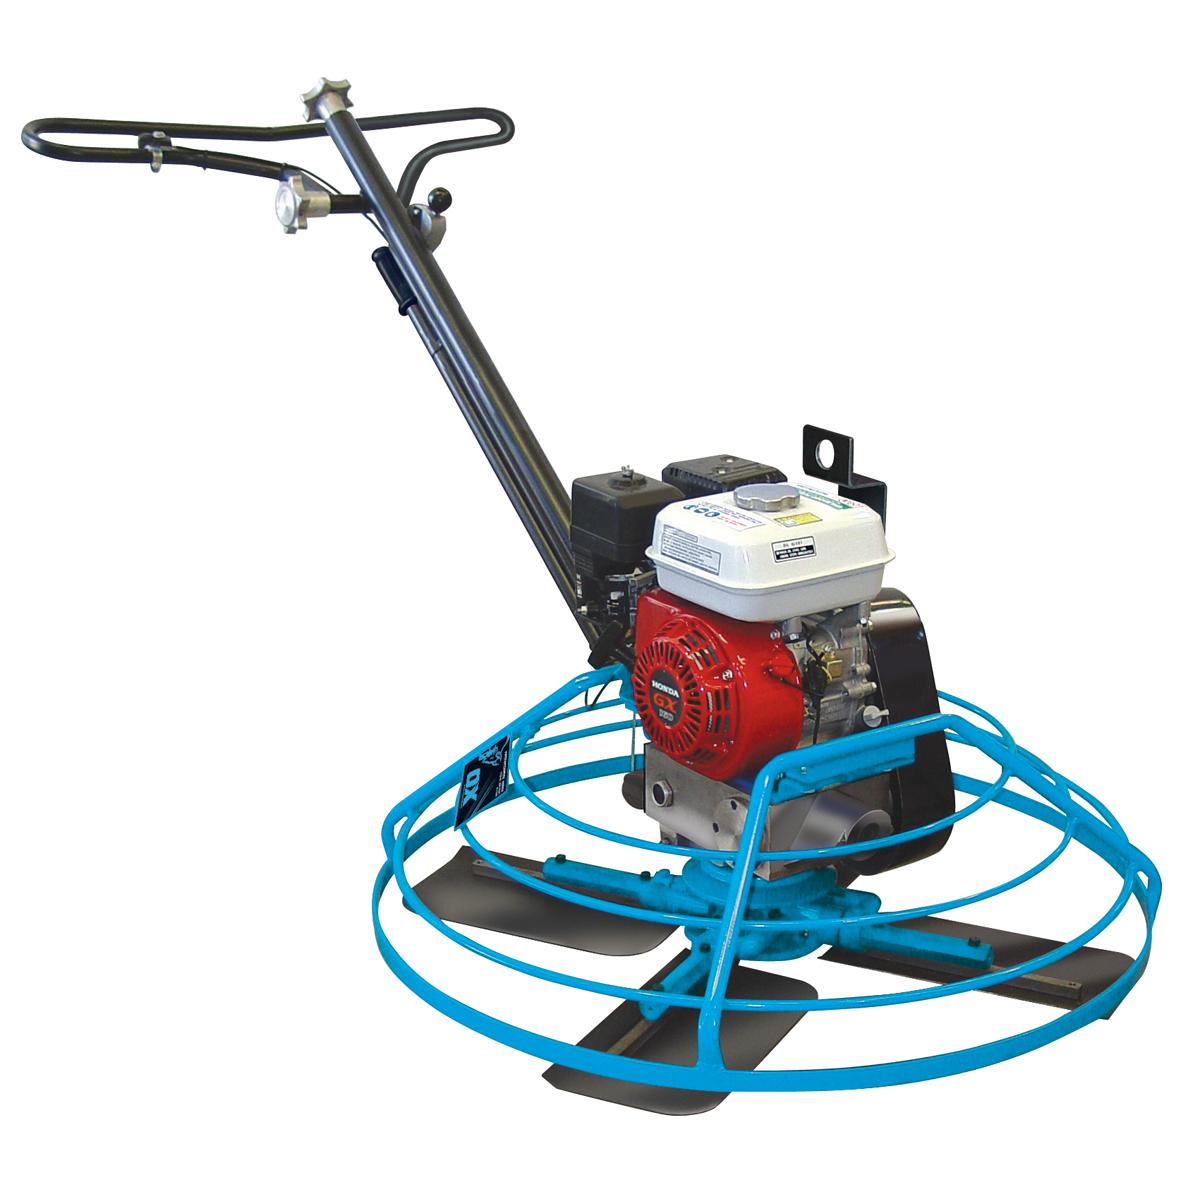 OX Professional 36 Trowelling Machine -